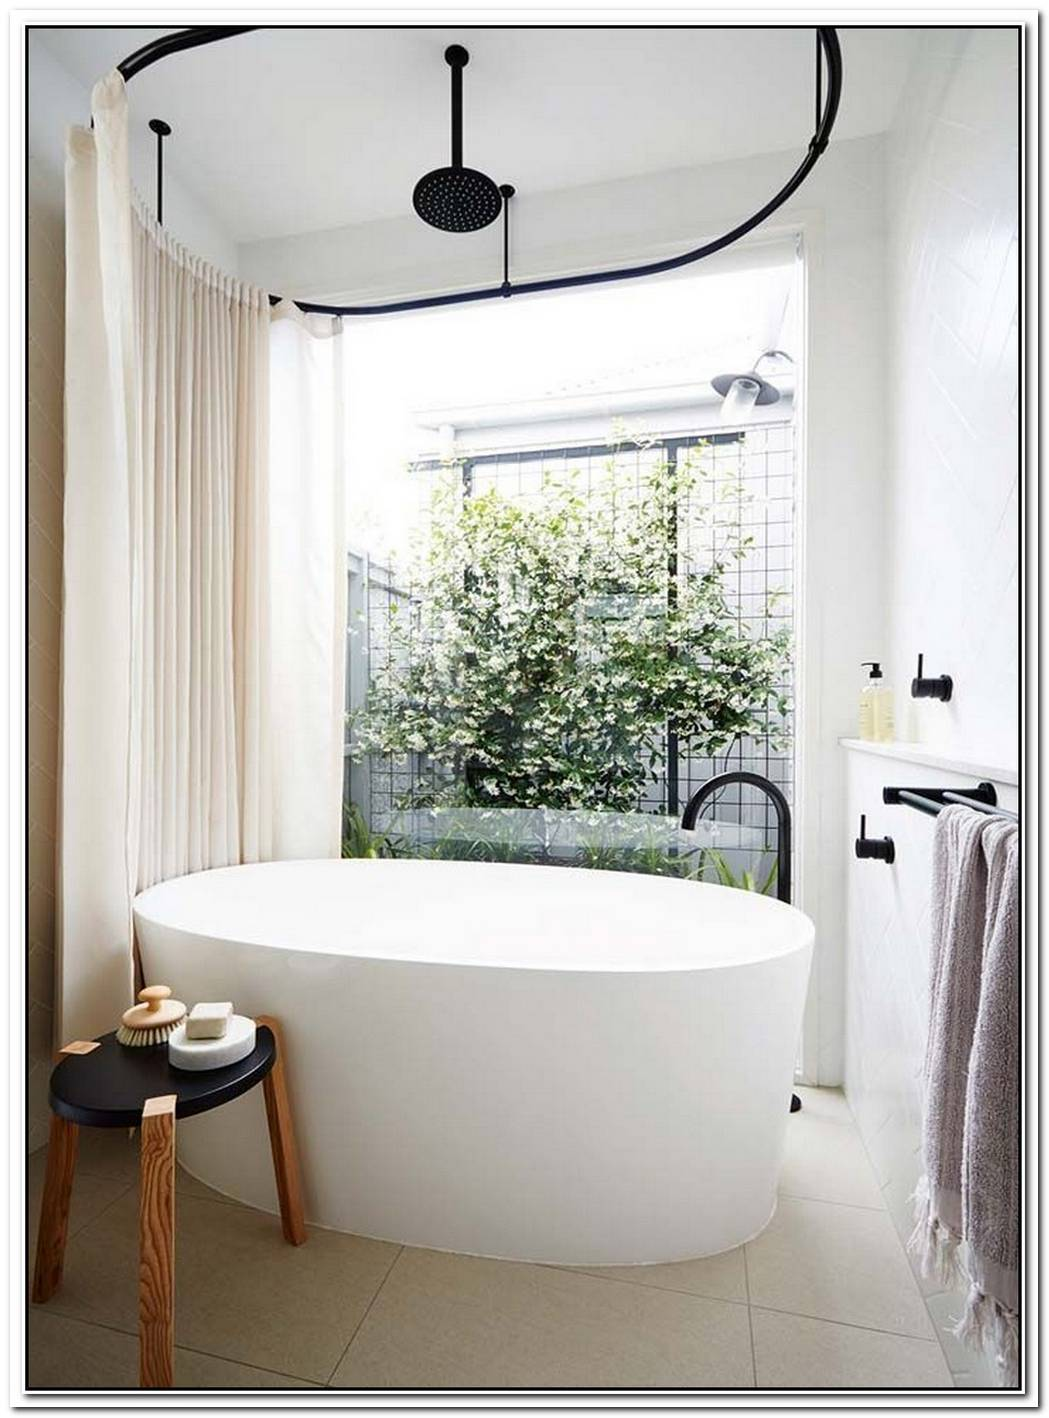 These 8 Bathroom Ideas Are The Reason We Love A Good Bathtub Shower Combination